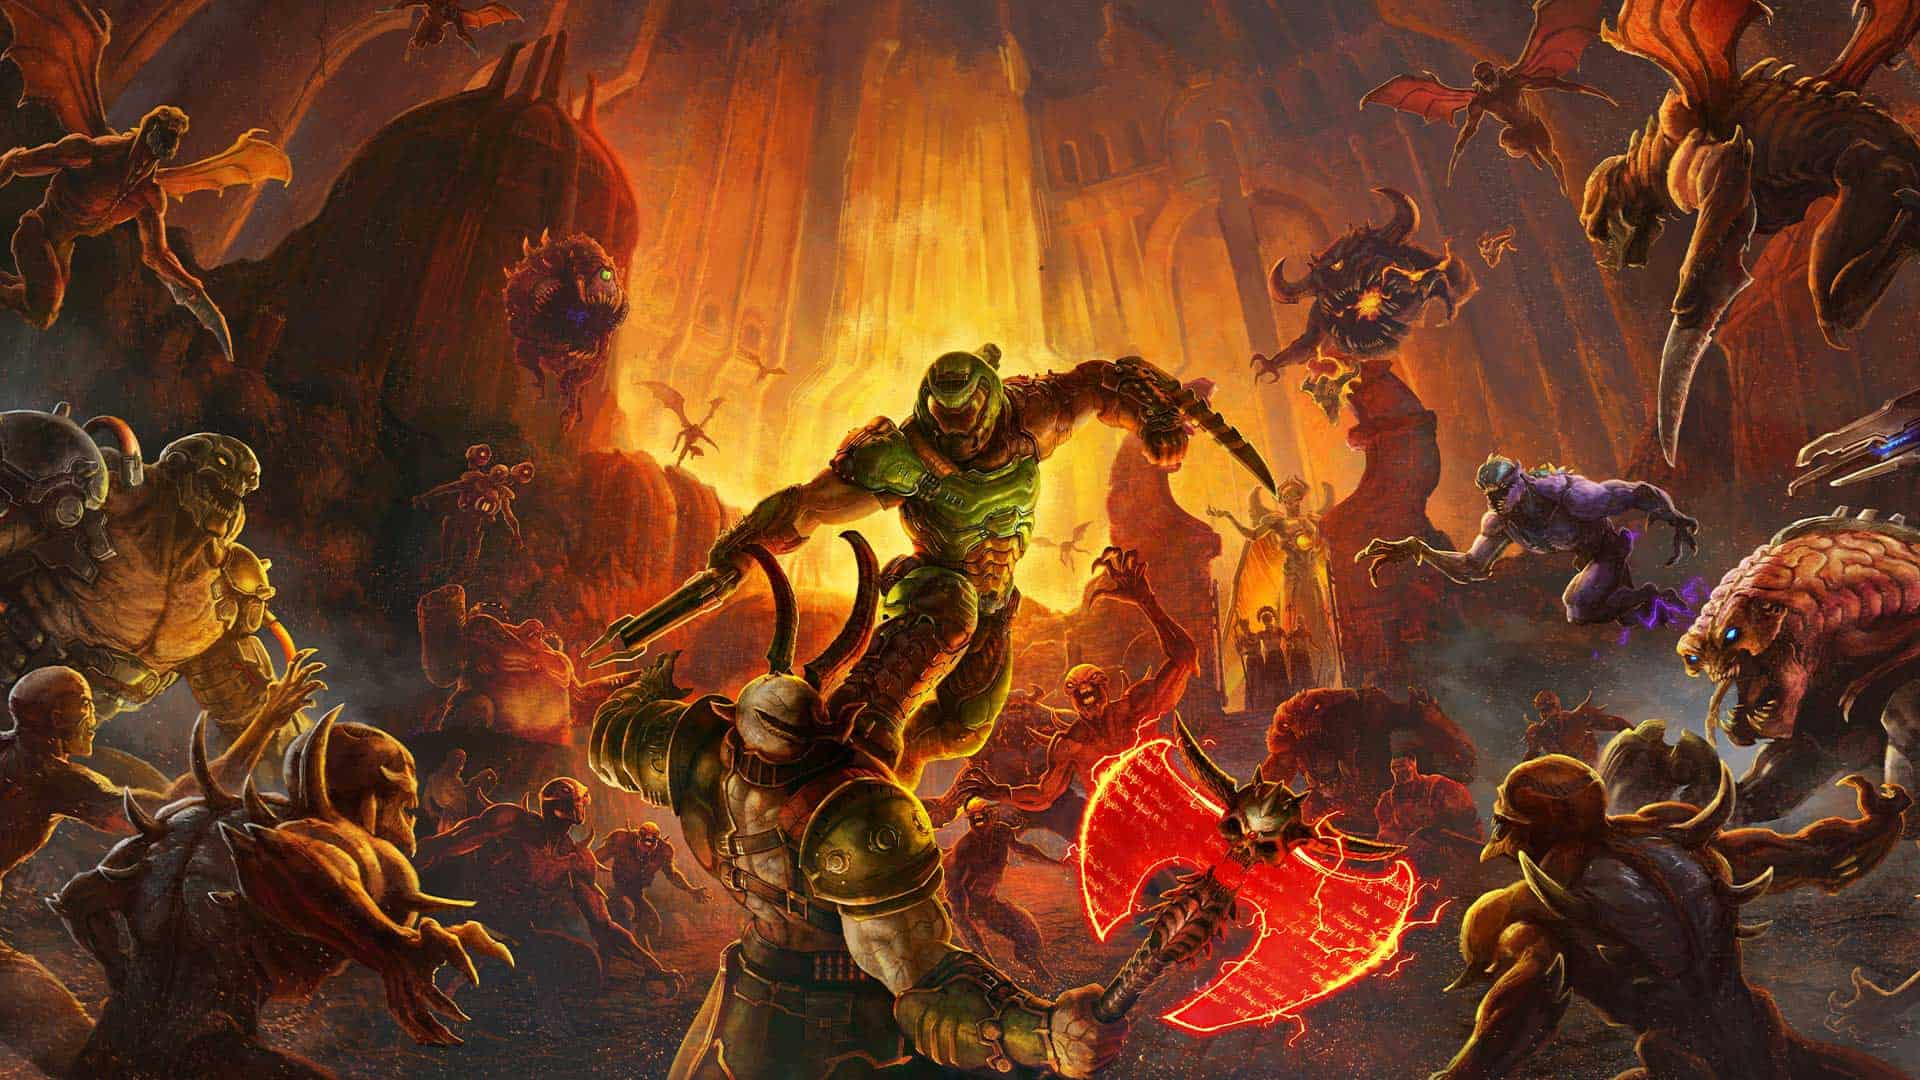 Doom Eternal Denuvo Nexus Retail Microtransactions 2020 Video game Releases